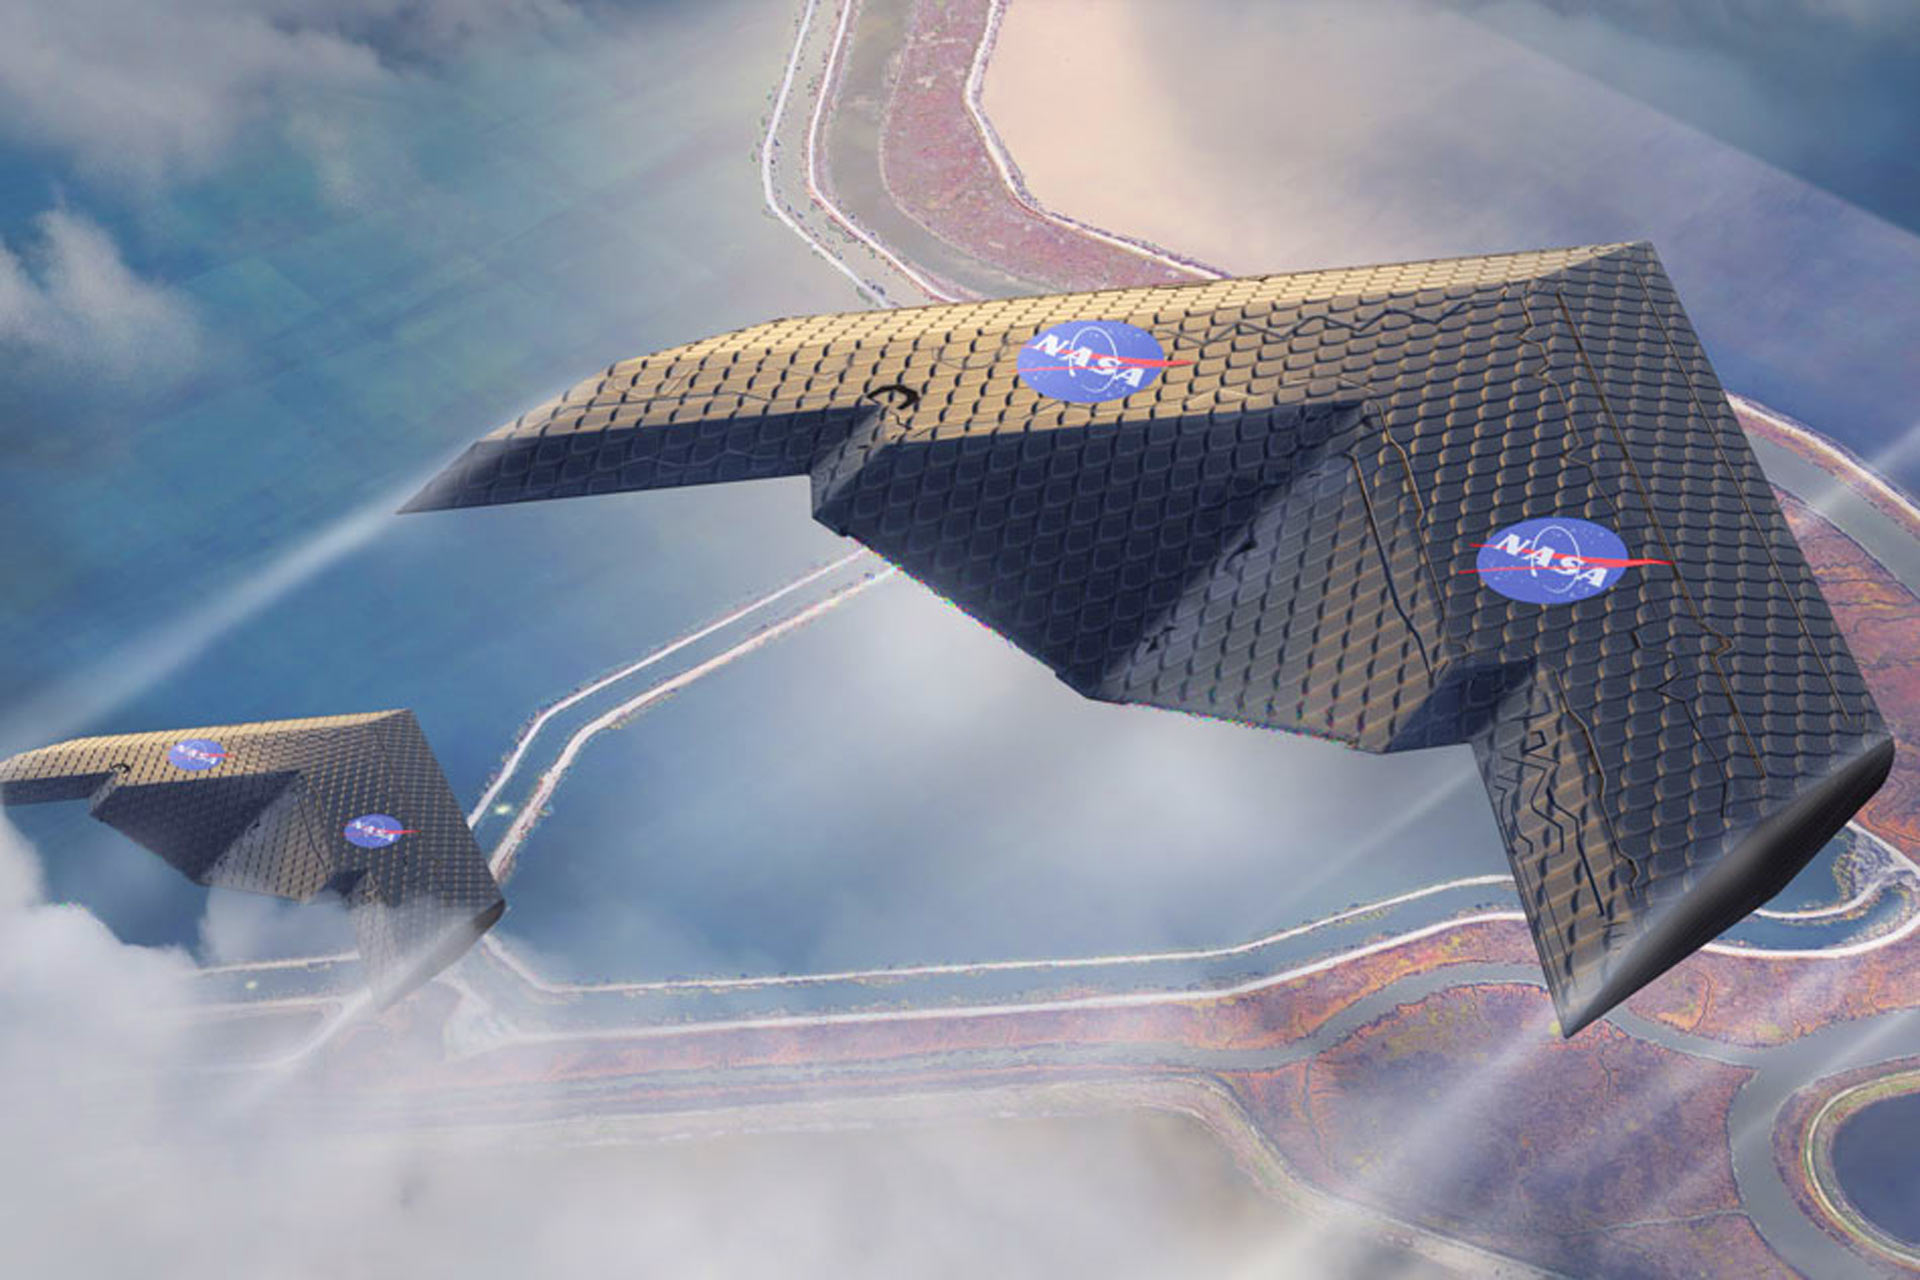 NASA and MIT model new airplane wing for flight efficiency